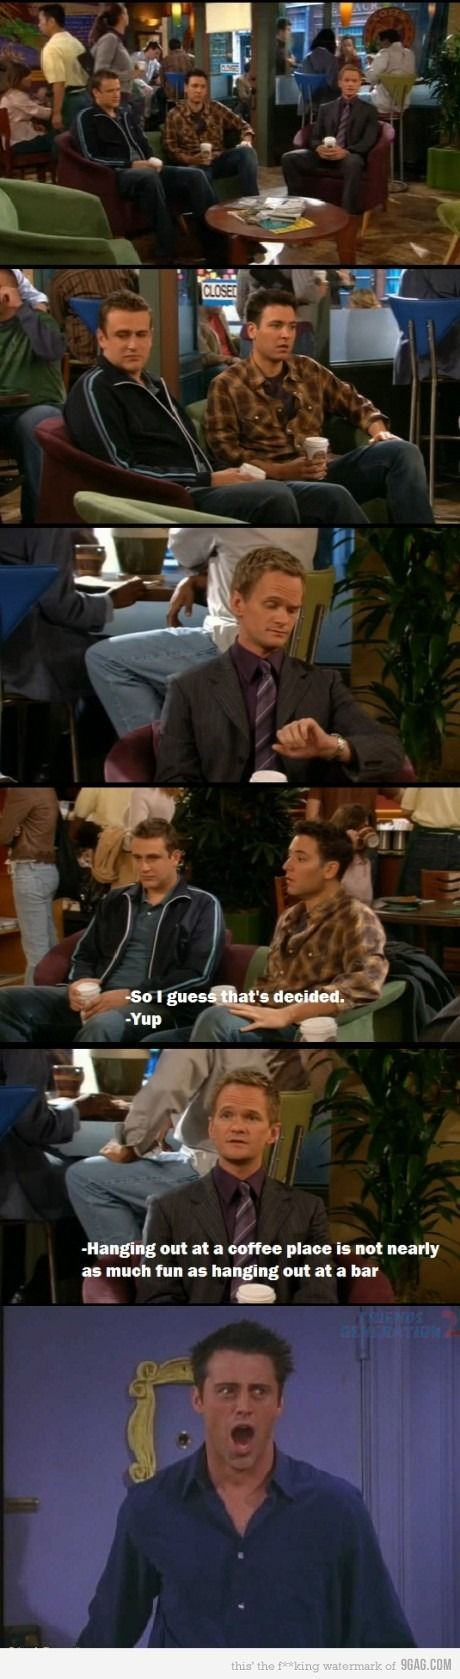 I laughed so hard when I saw that episode of How I met your mother. I <333 both though!